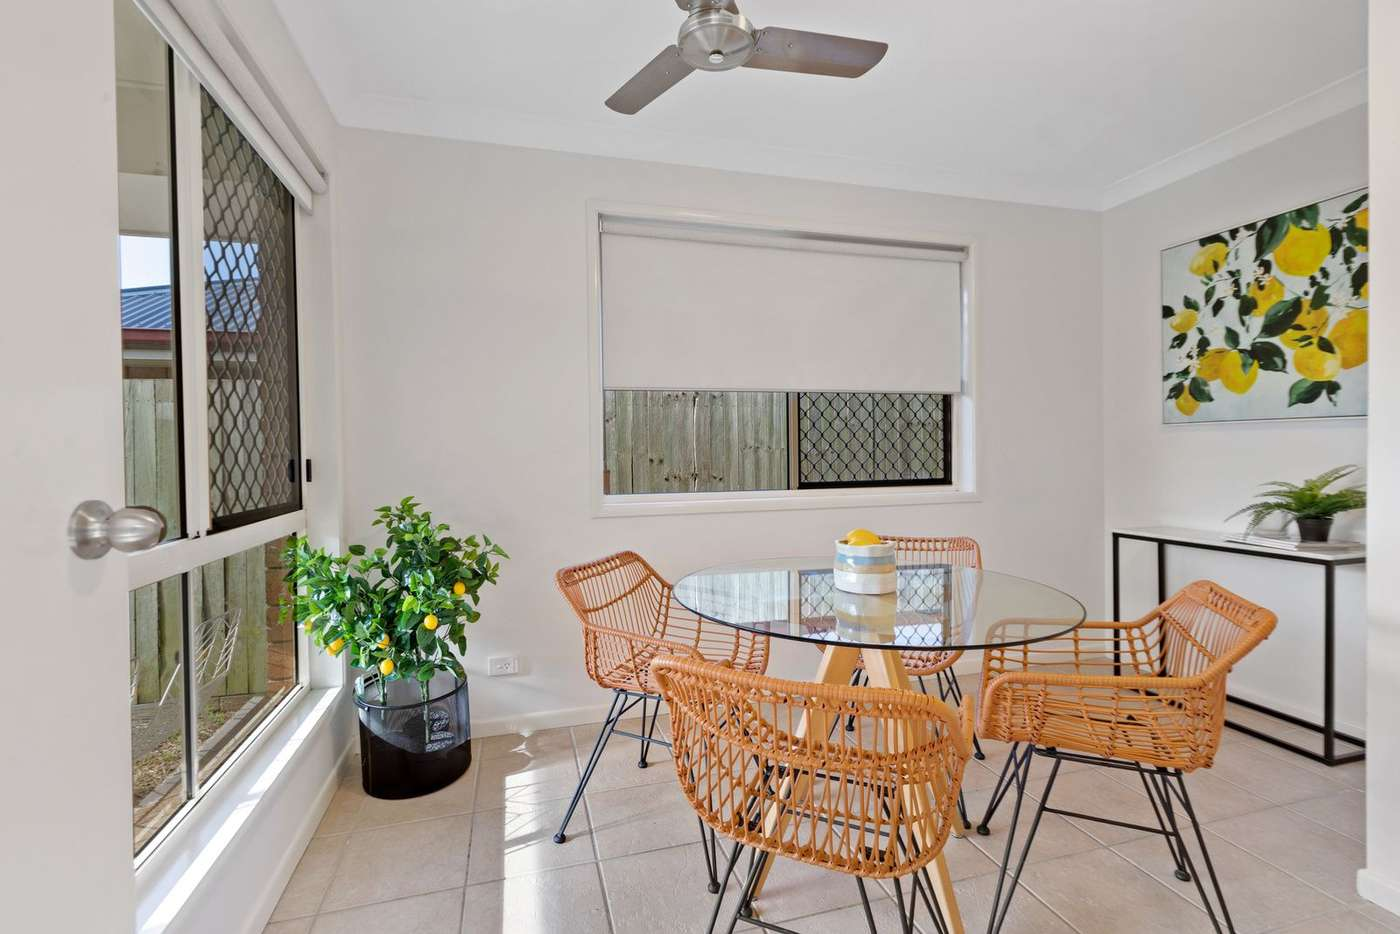 Sixth view of Homely house listing, 98 Orange Grove Road, Coopers Plains QLD 4108